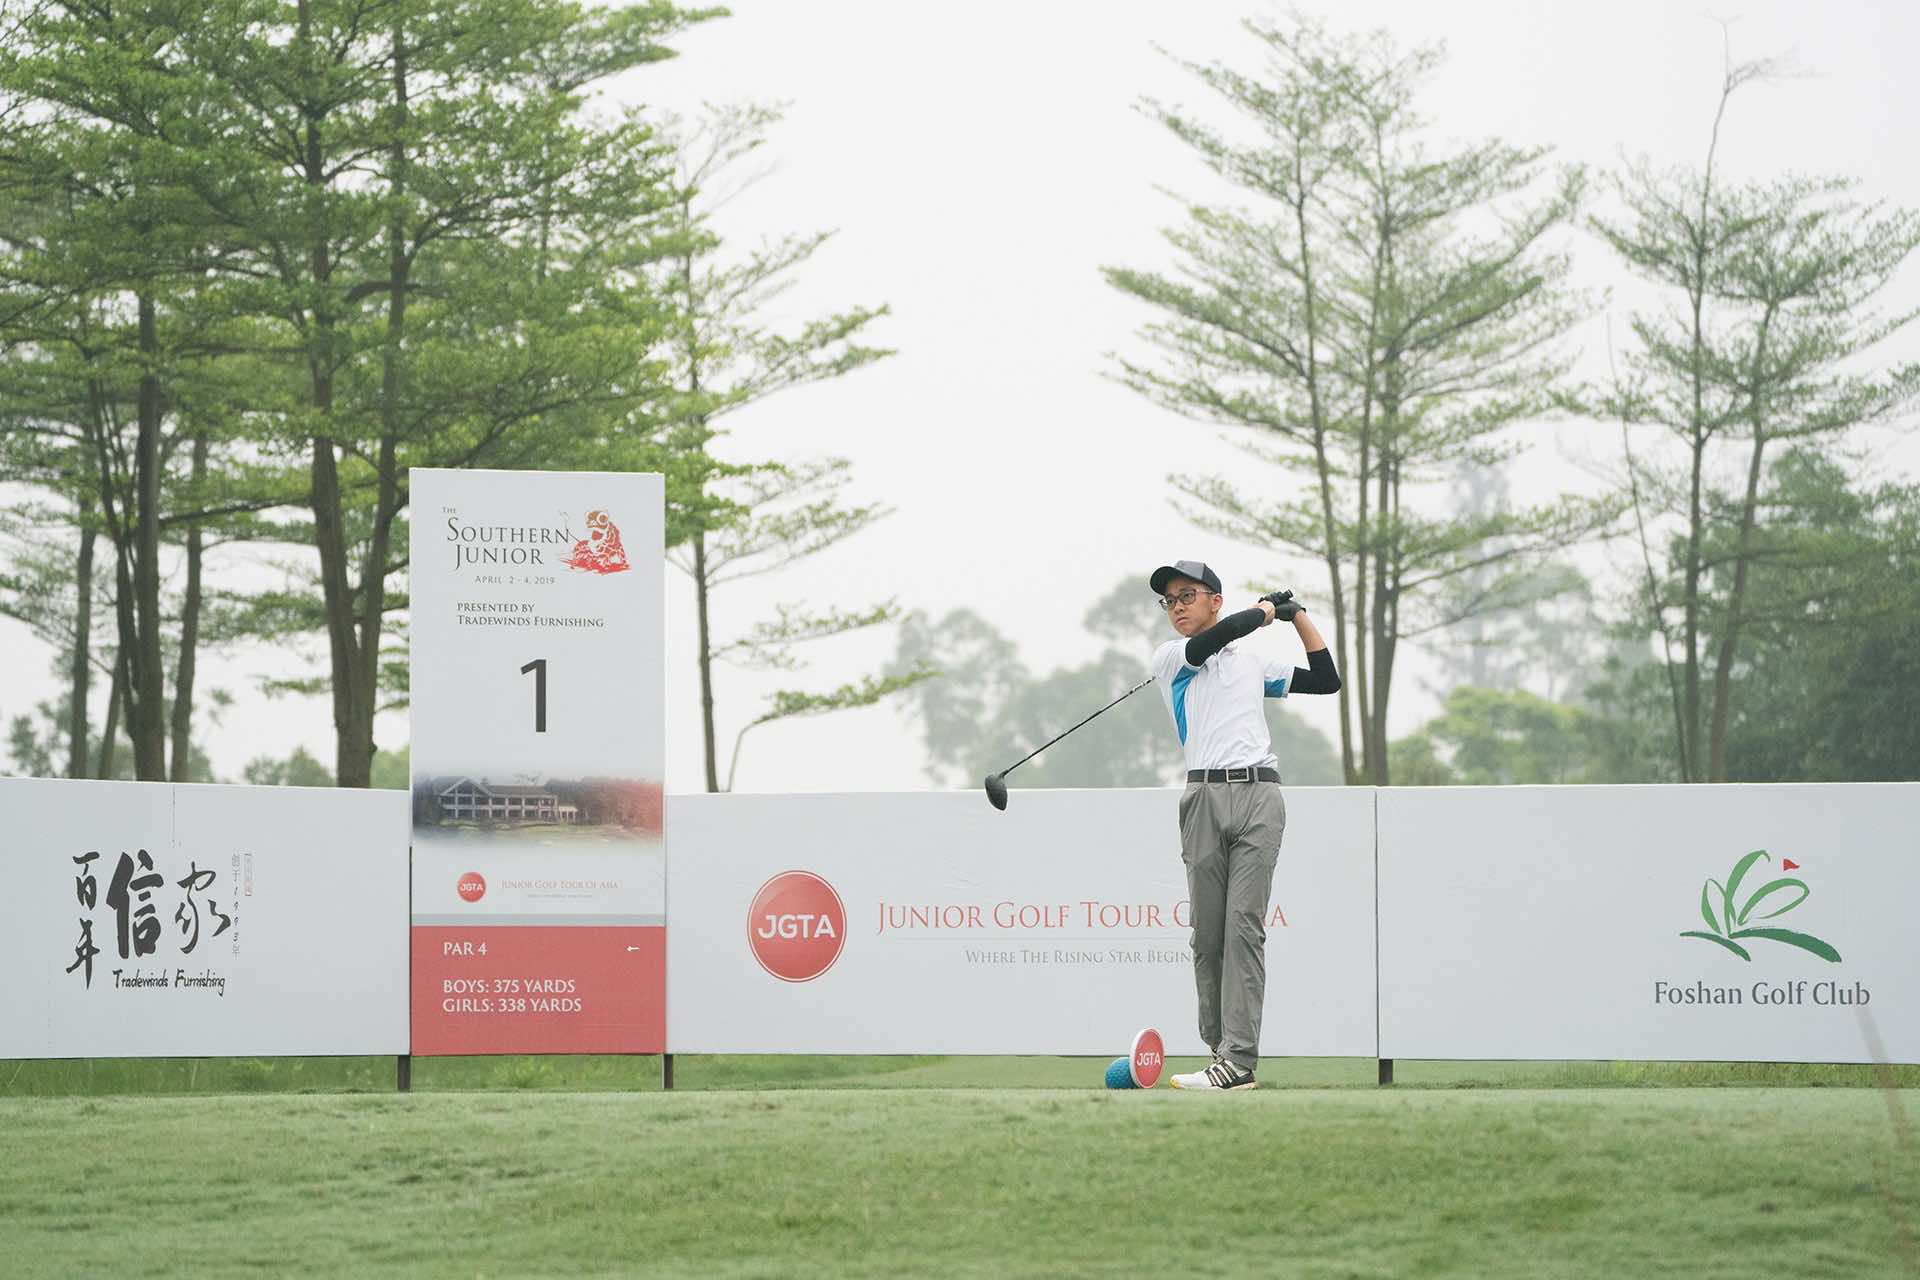 Kaijun Ma First Team Junior All-Asia First Tee Swing at The Southern Junior